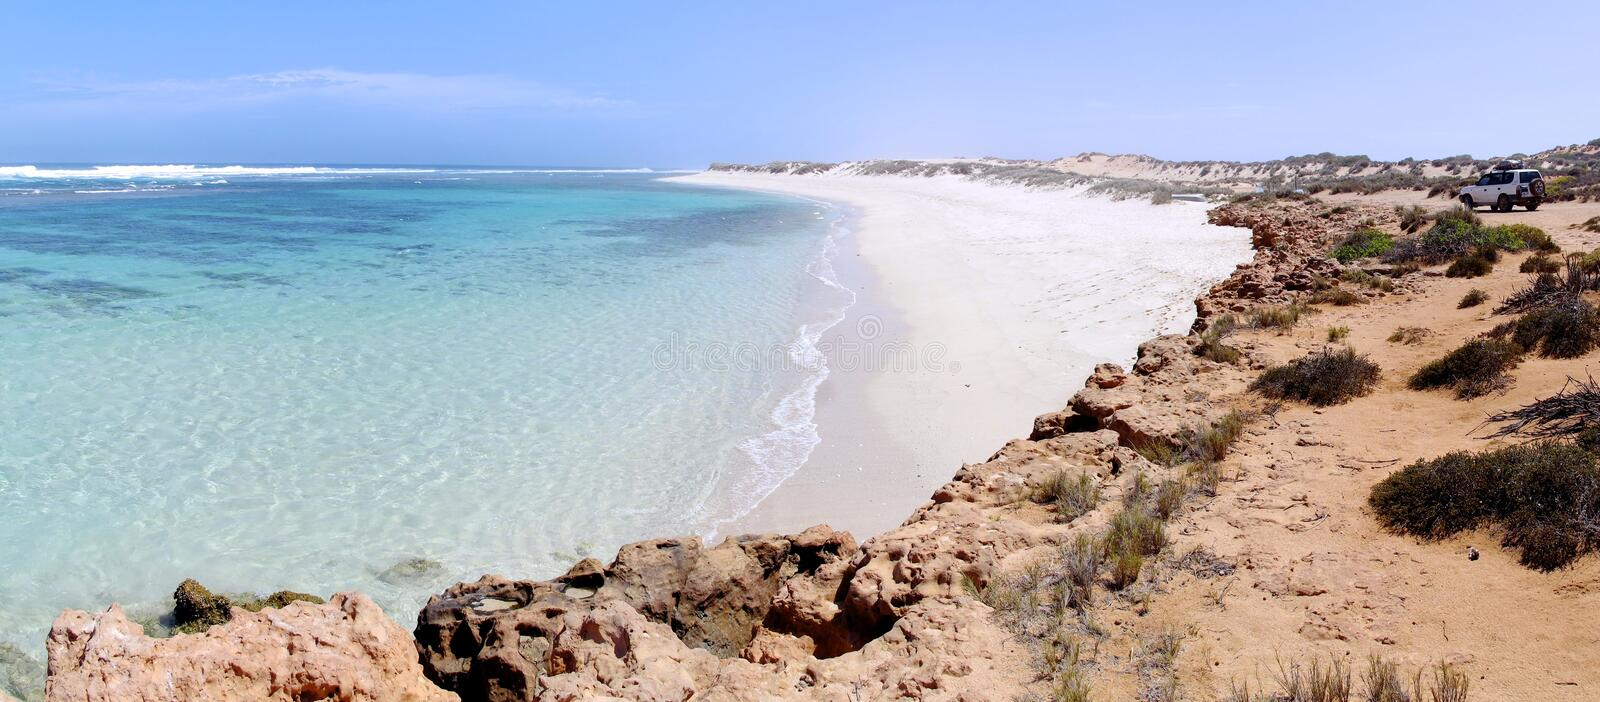 Côte de Ningaloo, Australie occidentale images libres de droits